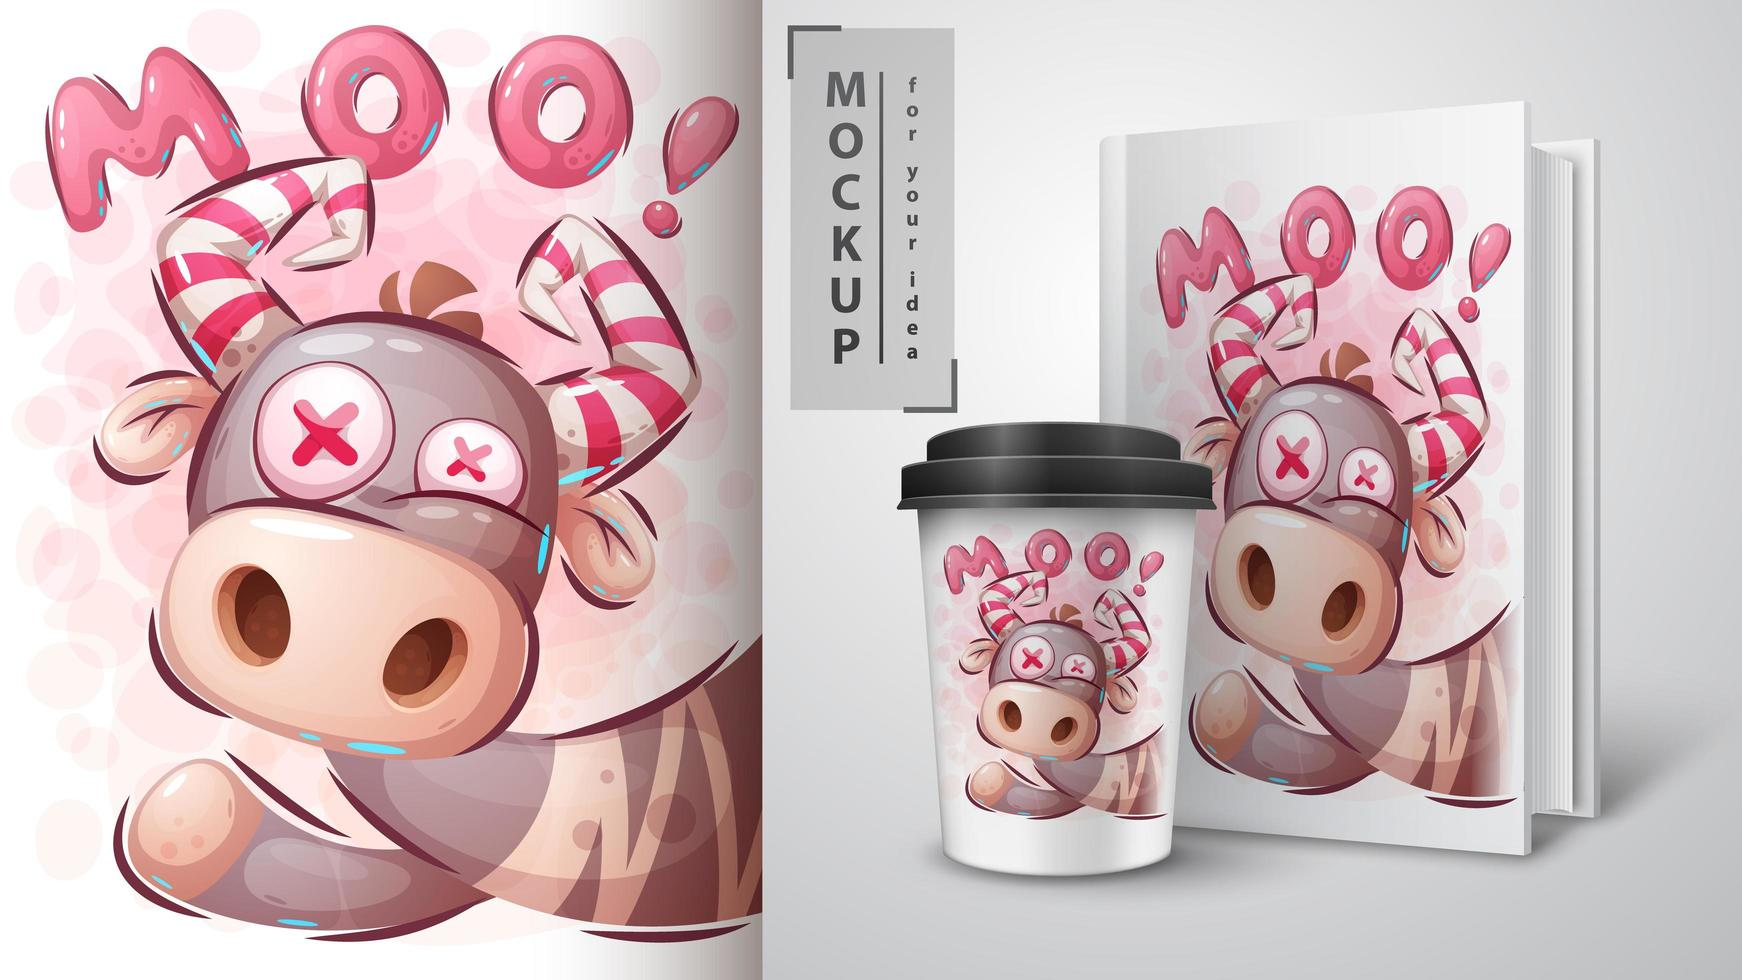 Crazy Mooing Cow Poster vector